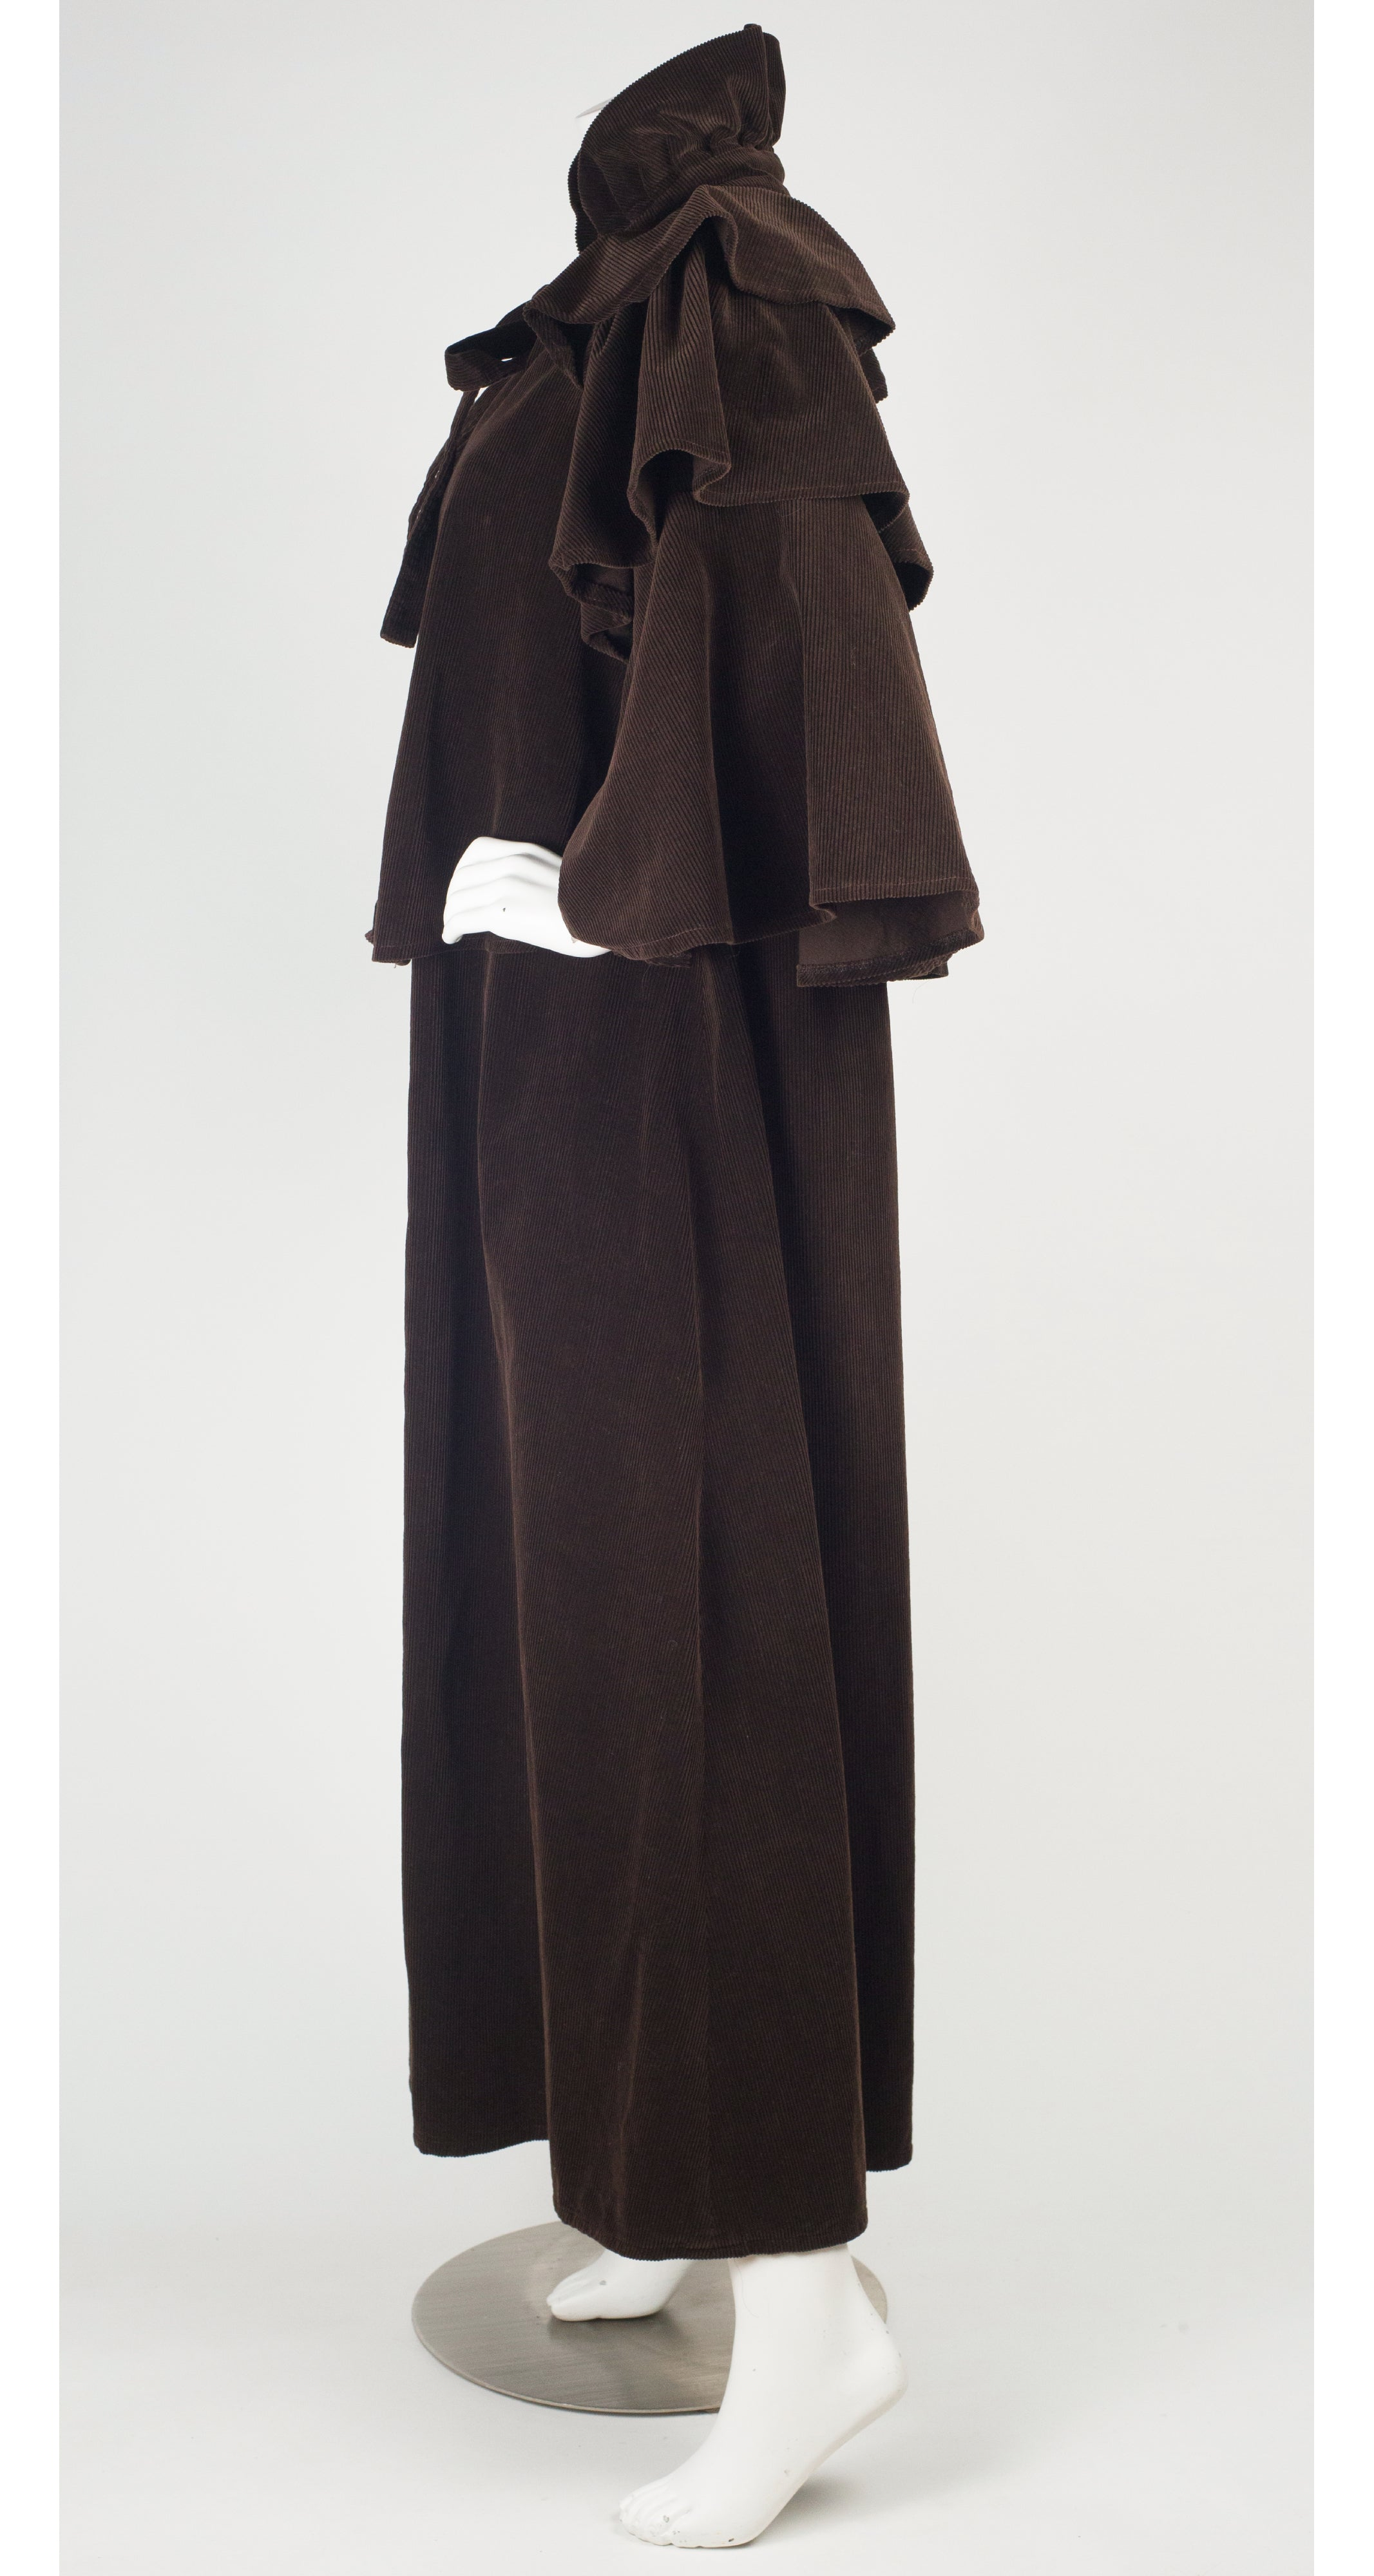 1970s British Brown Cotton Corduroy Ruffle Cloak